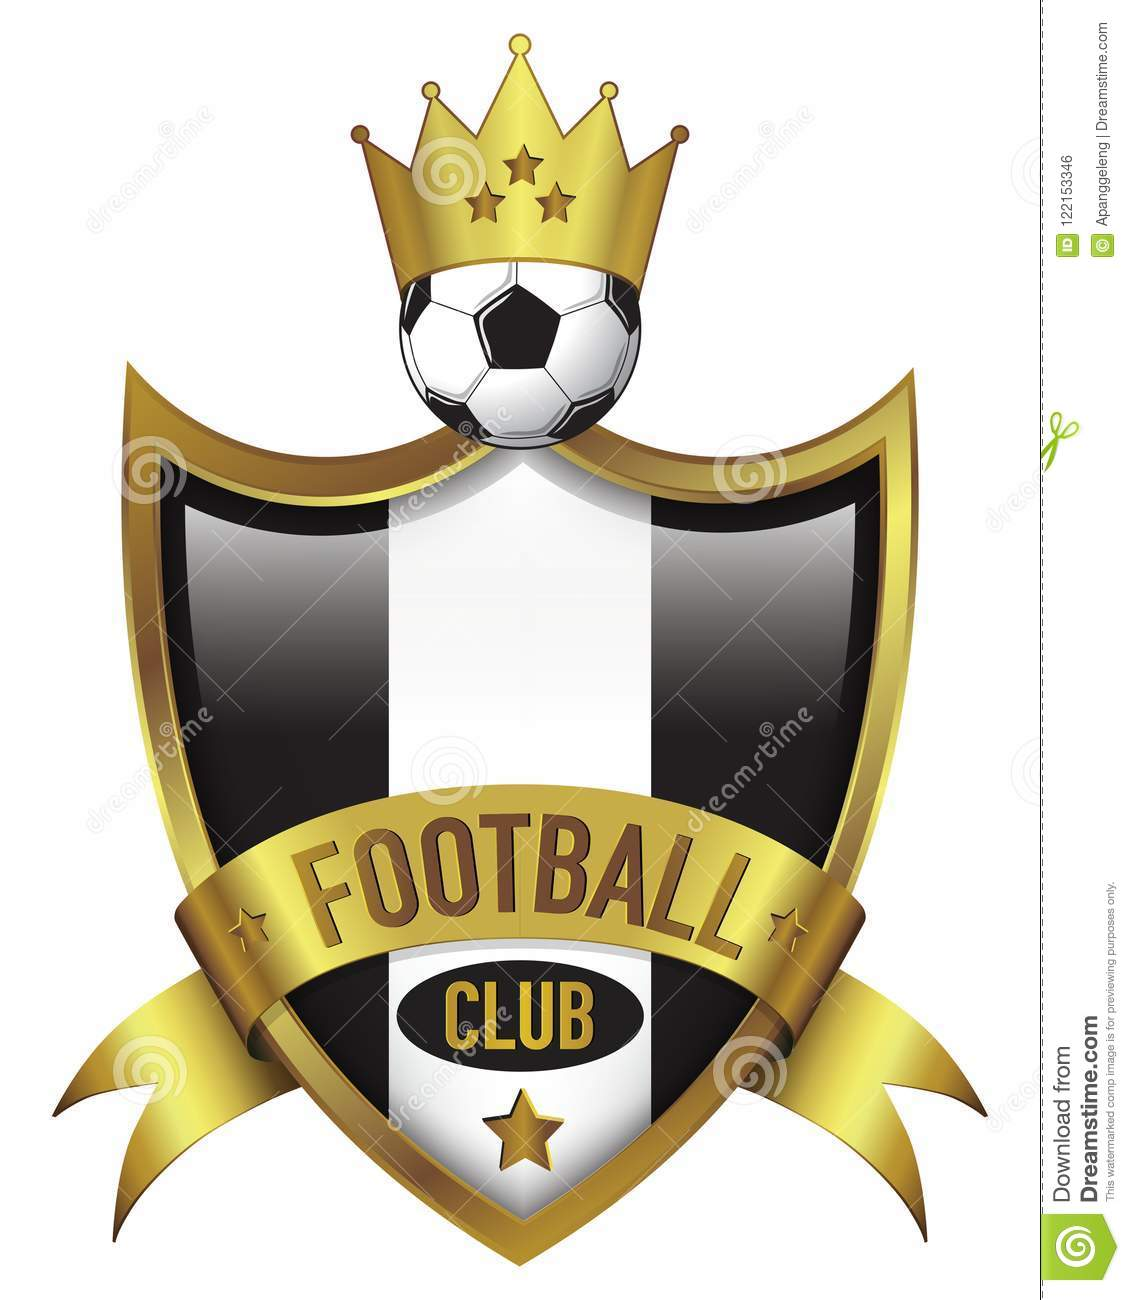 Football Club Logo Design With Gold Crown Stock Vector Illustration Of Pattern Logo 122153346